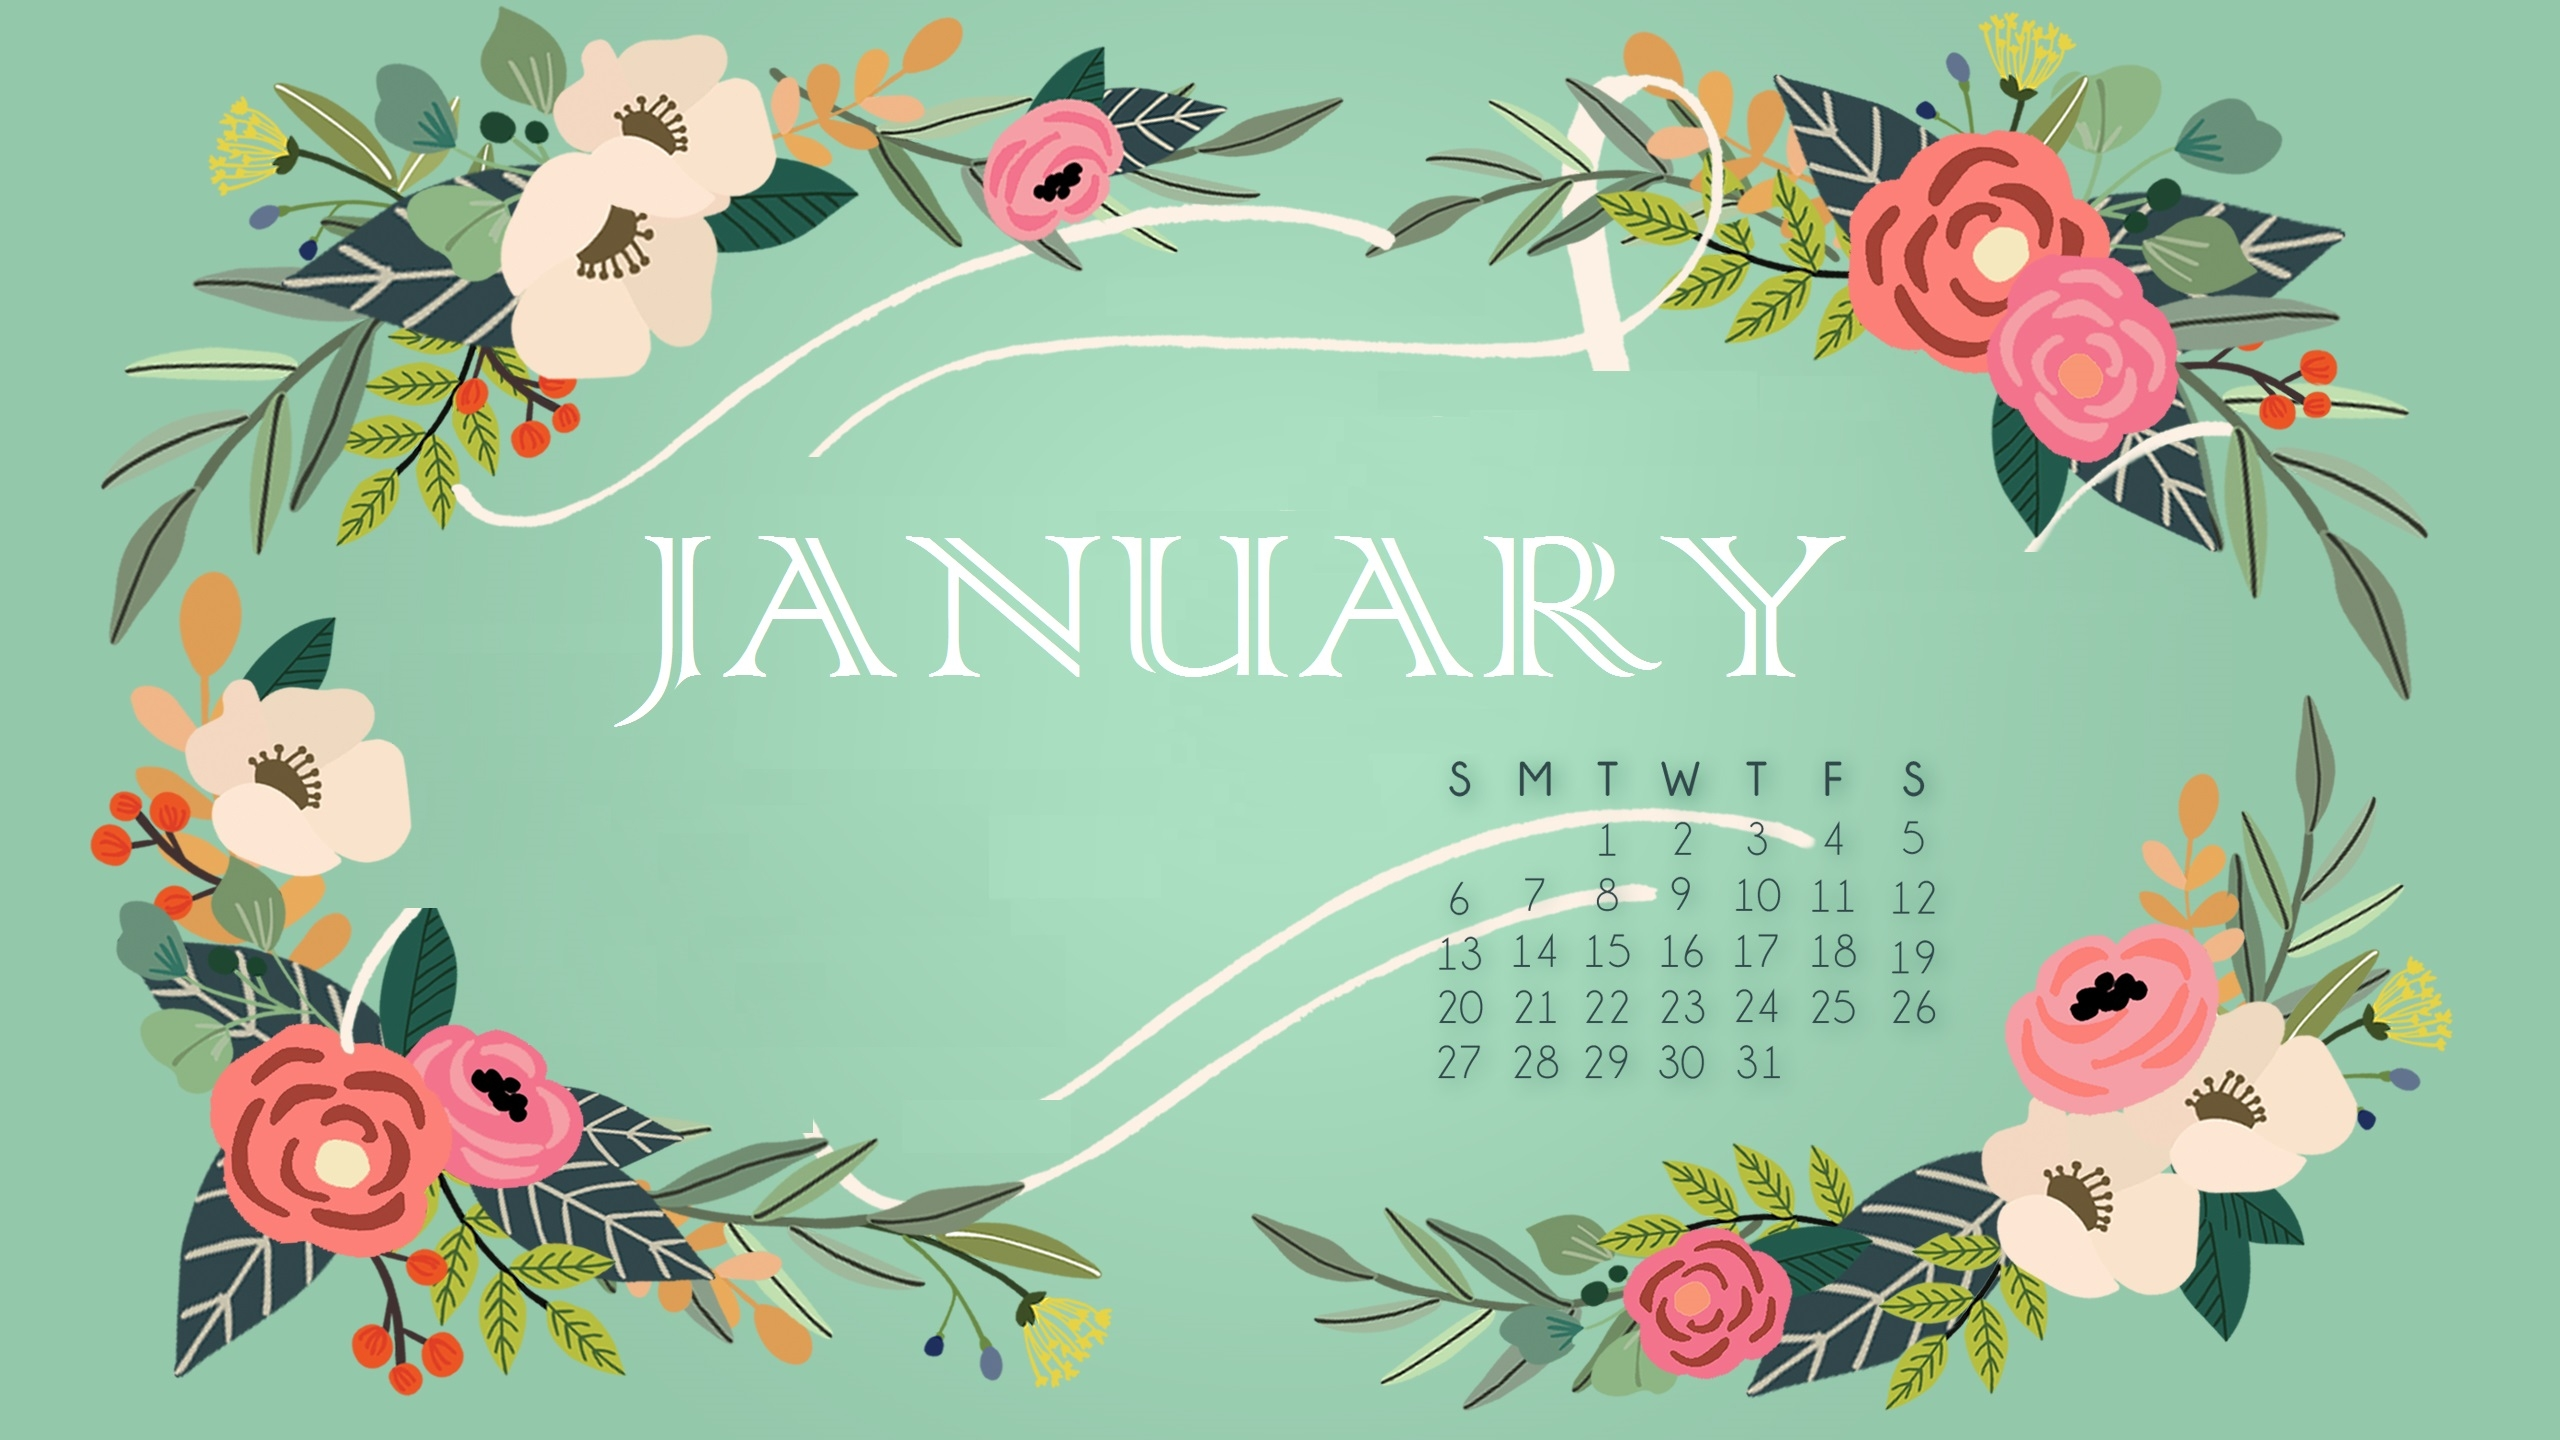 january 2019 calendar wallpaper::January 2019 iPhone Calendar